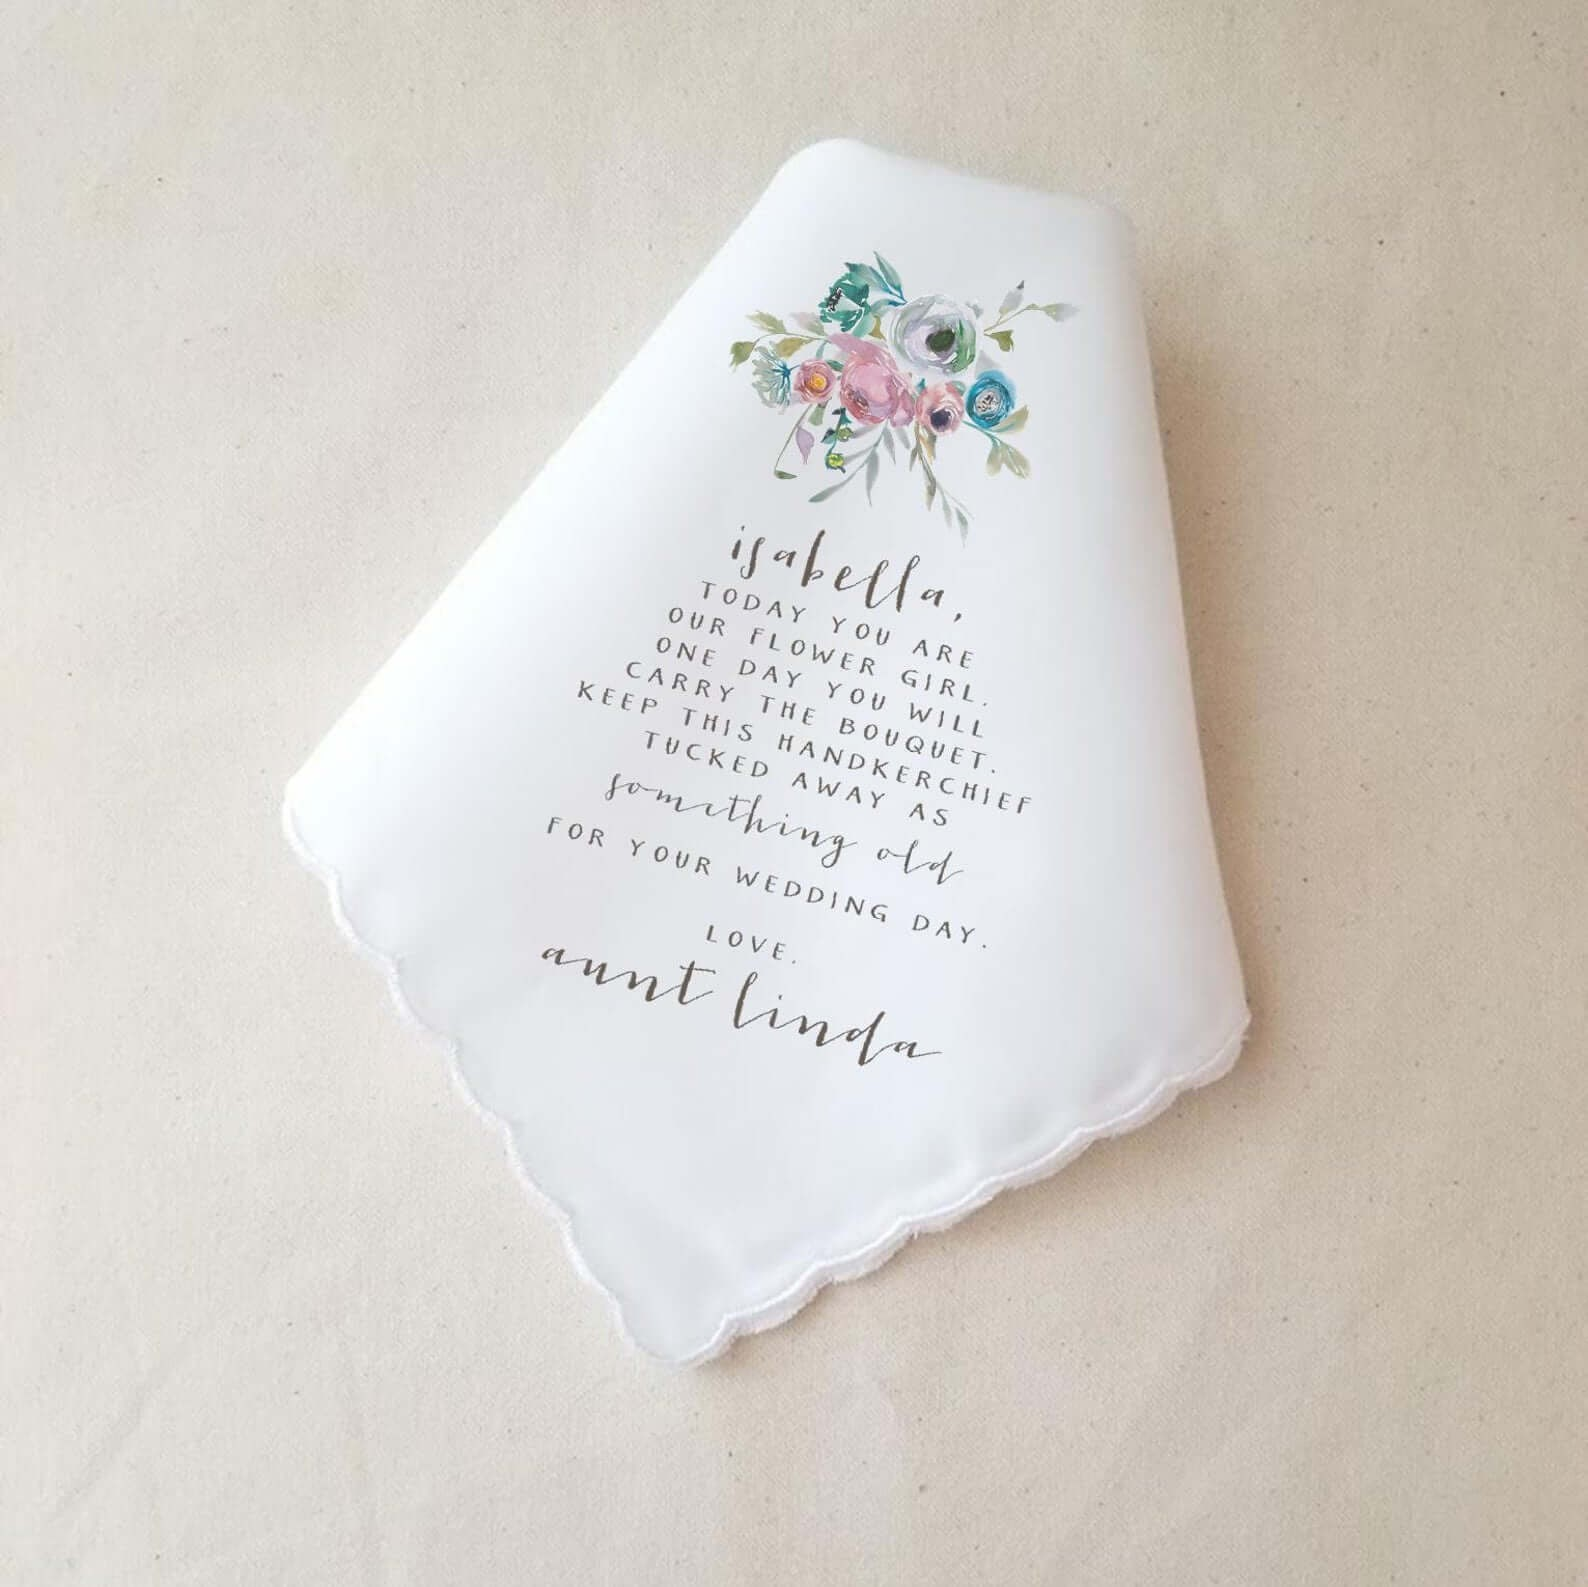 Beautiful printed handkerchief that points to the flower girl's future wedding day'